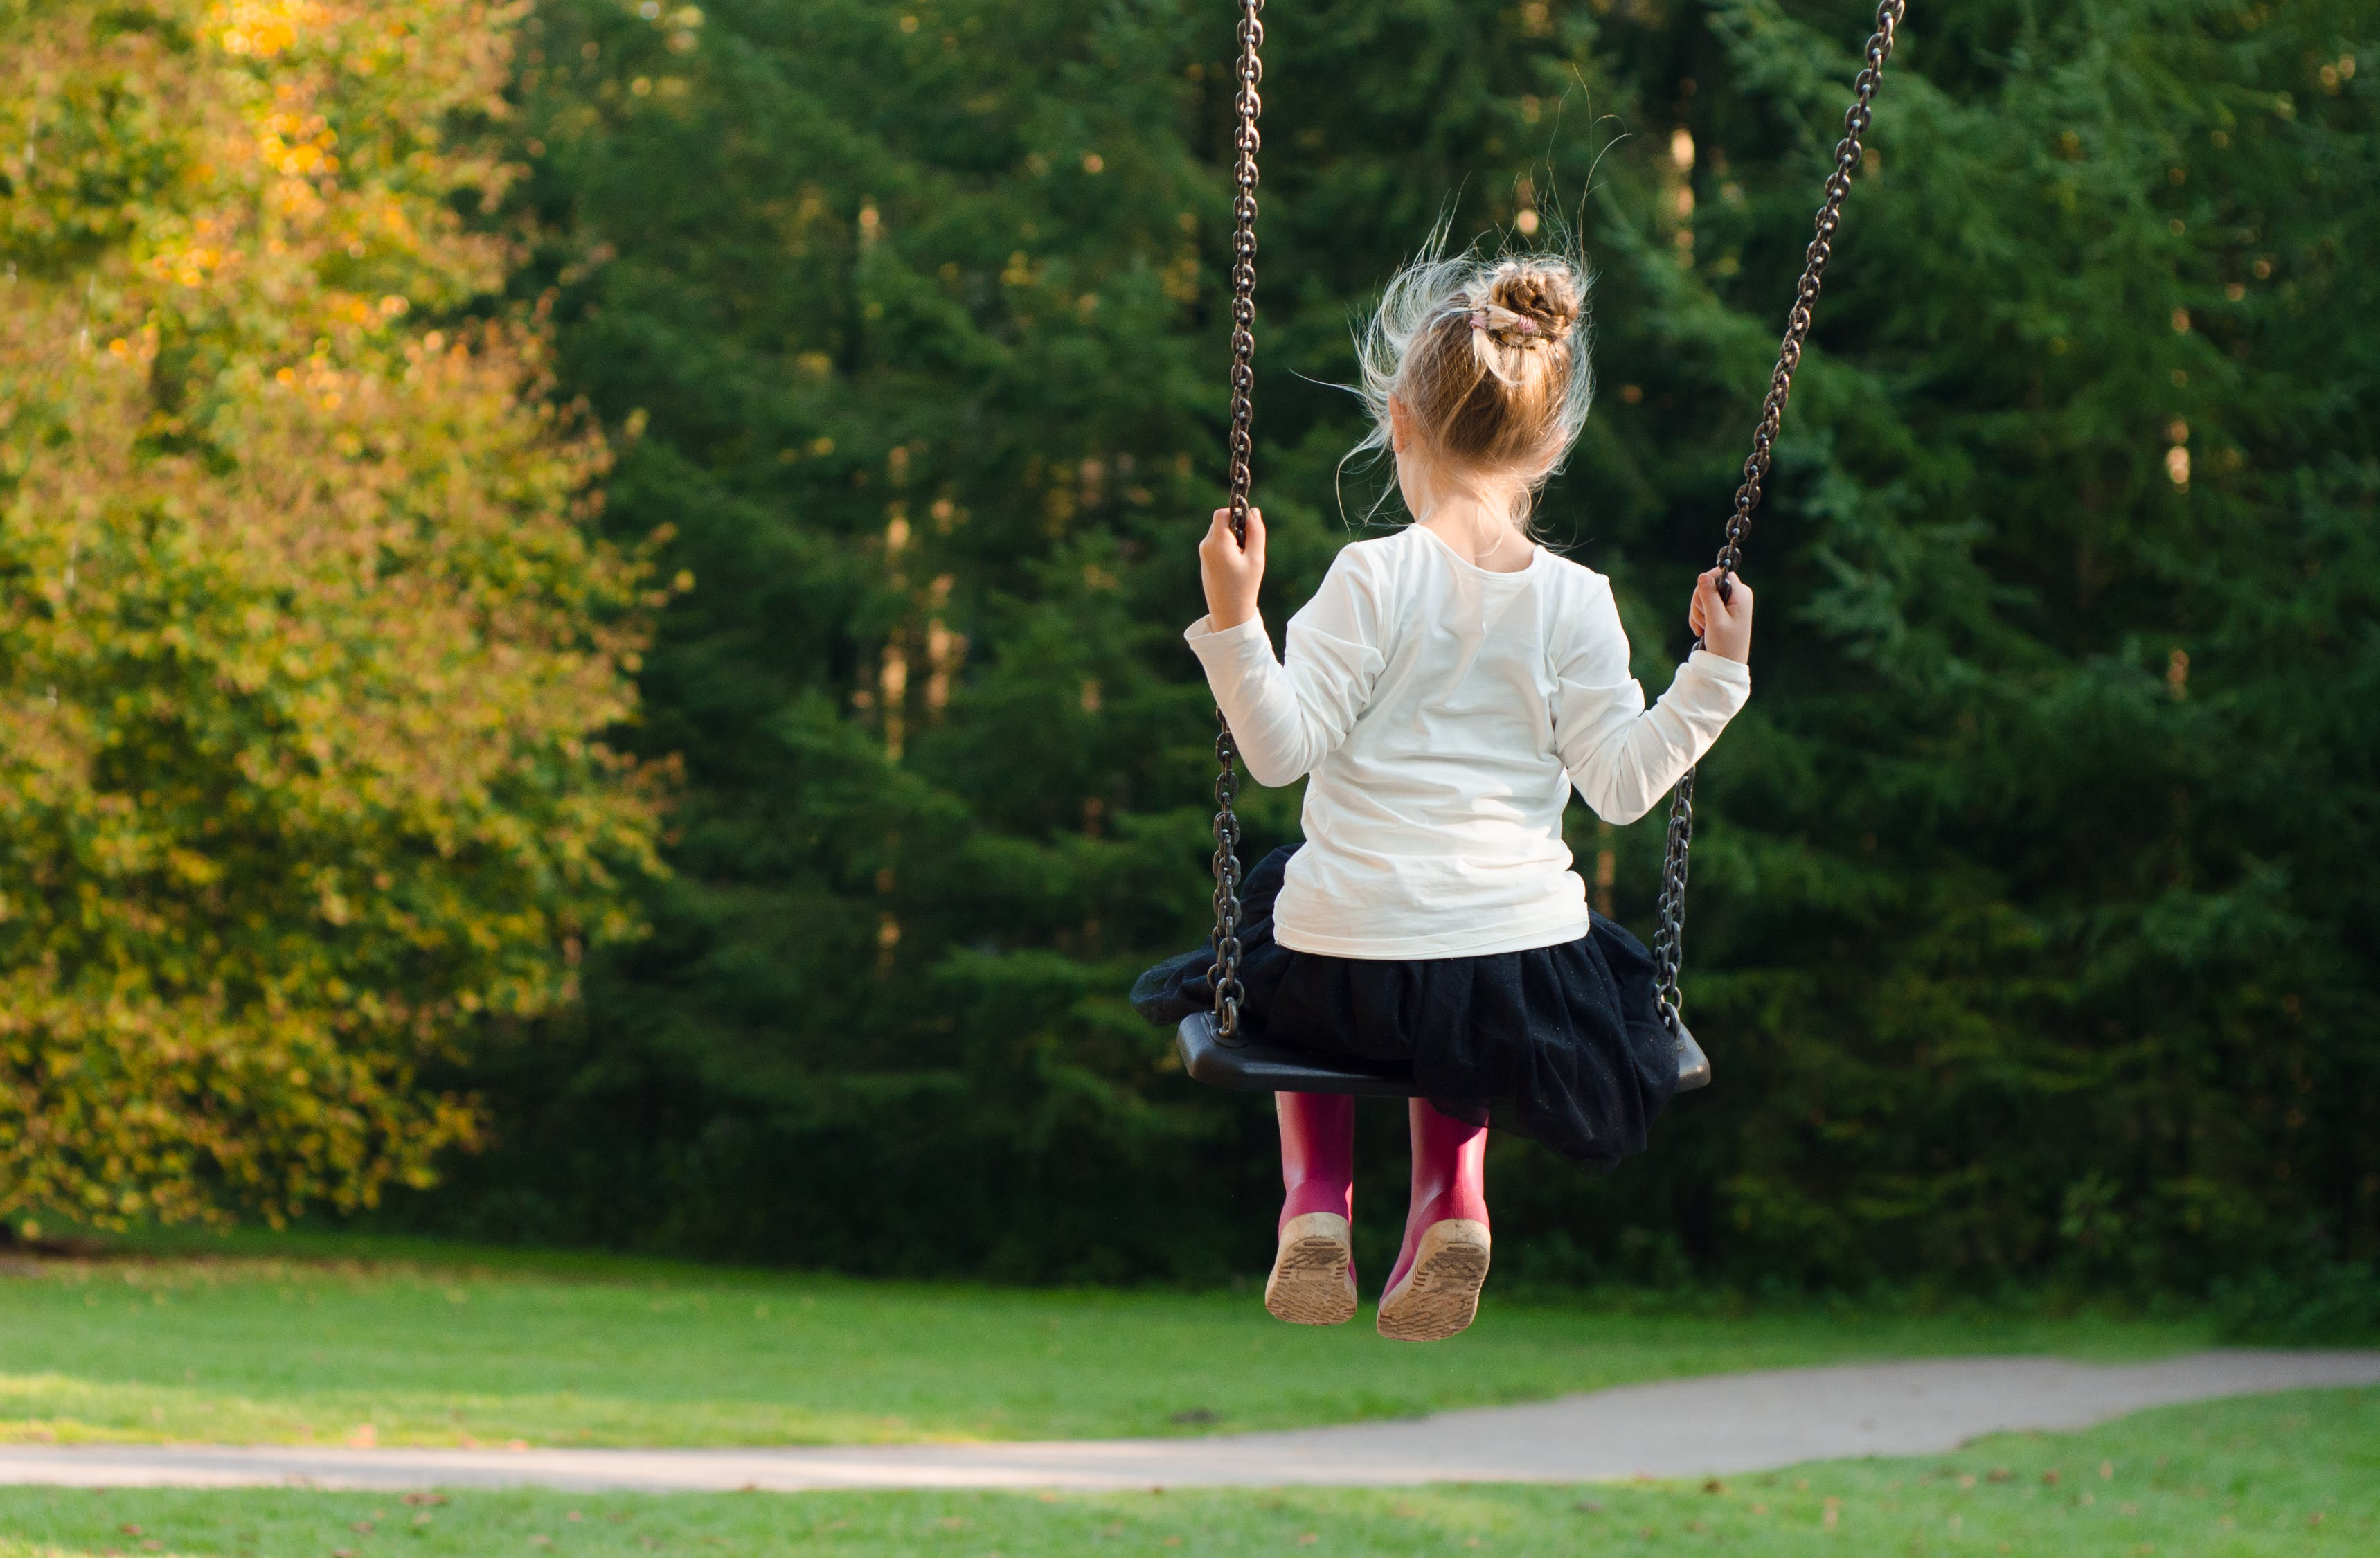 Child swaying on a swing